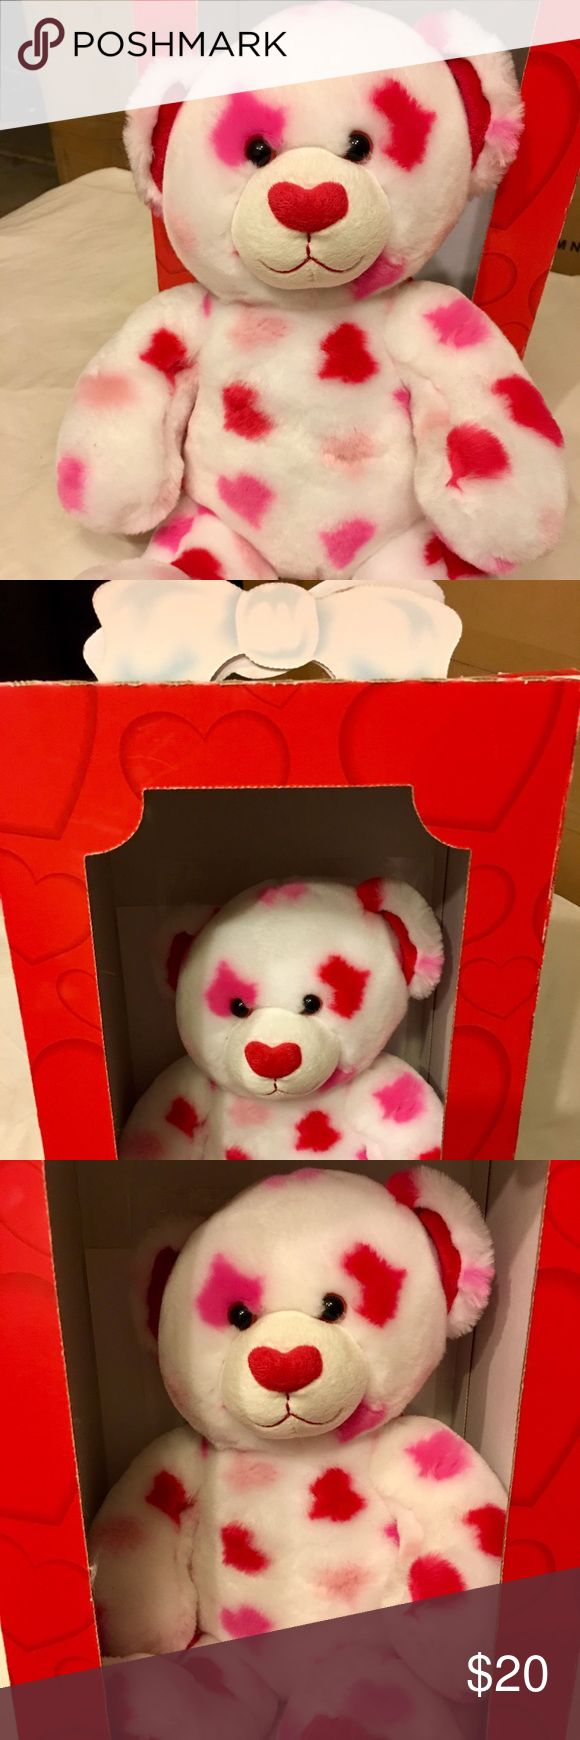 Best 25 obtain birth certificate ideas on pinterest parent or heart shaped build a bear perfect for the upcoming valentines day or love day aiddatafo Image collections